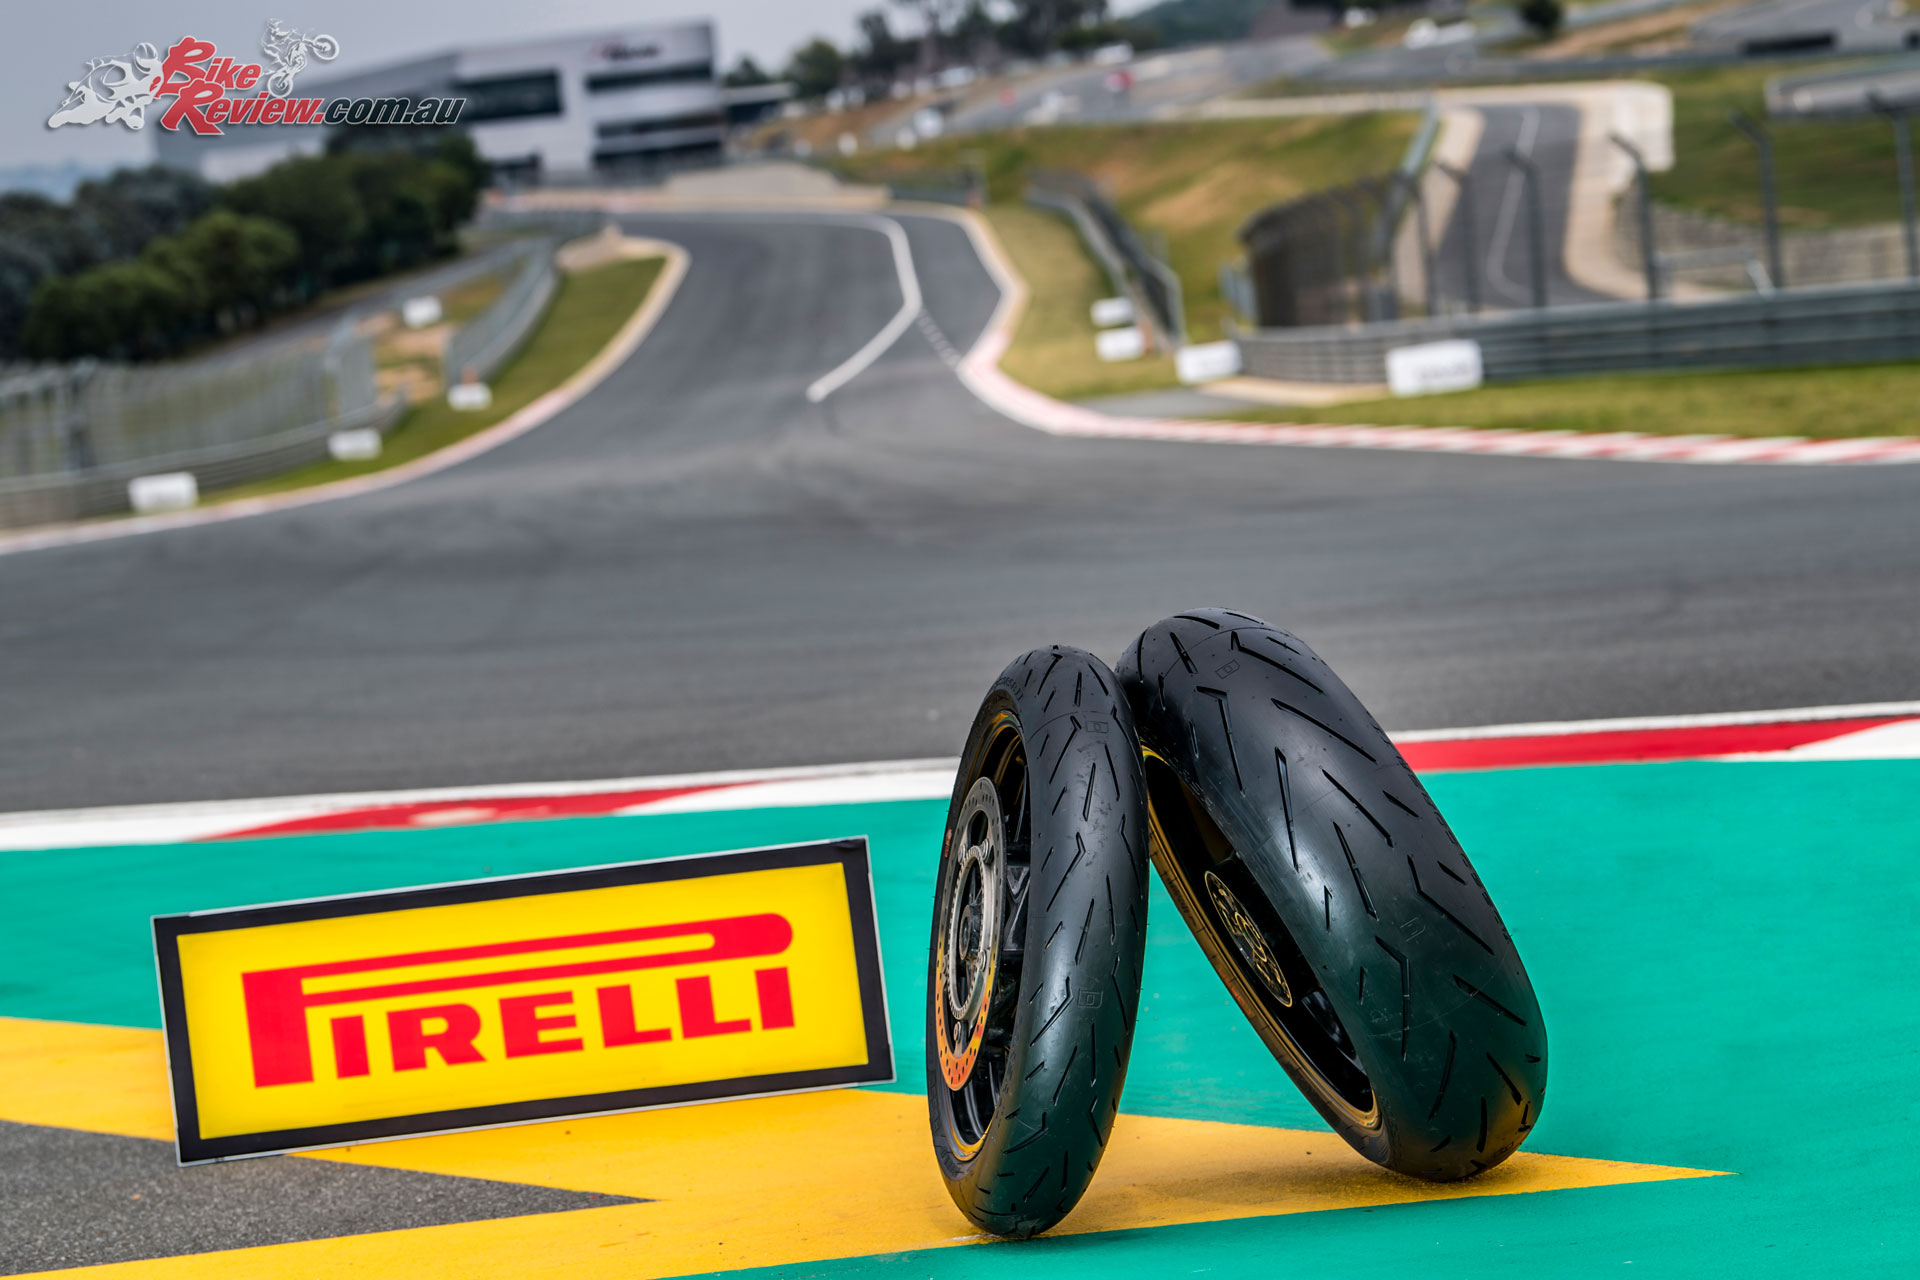 Pirelli's new Diablo Rosso Corsa II tyres at Kyalami Circuit in South Africa